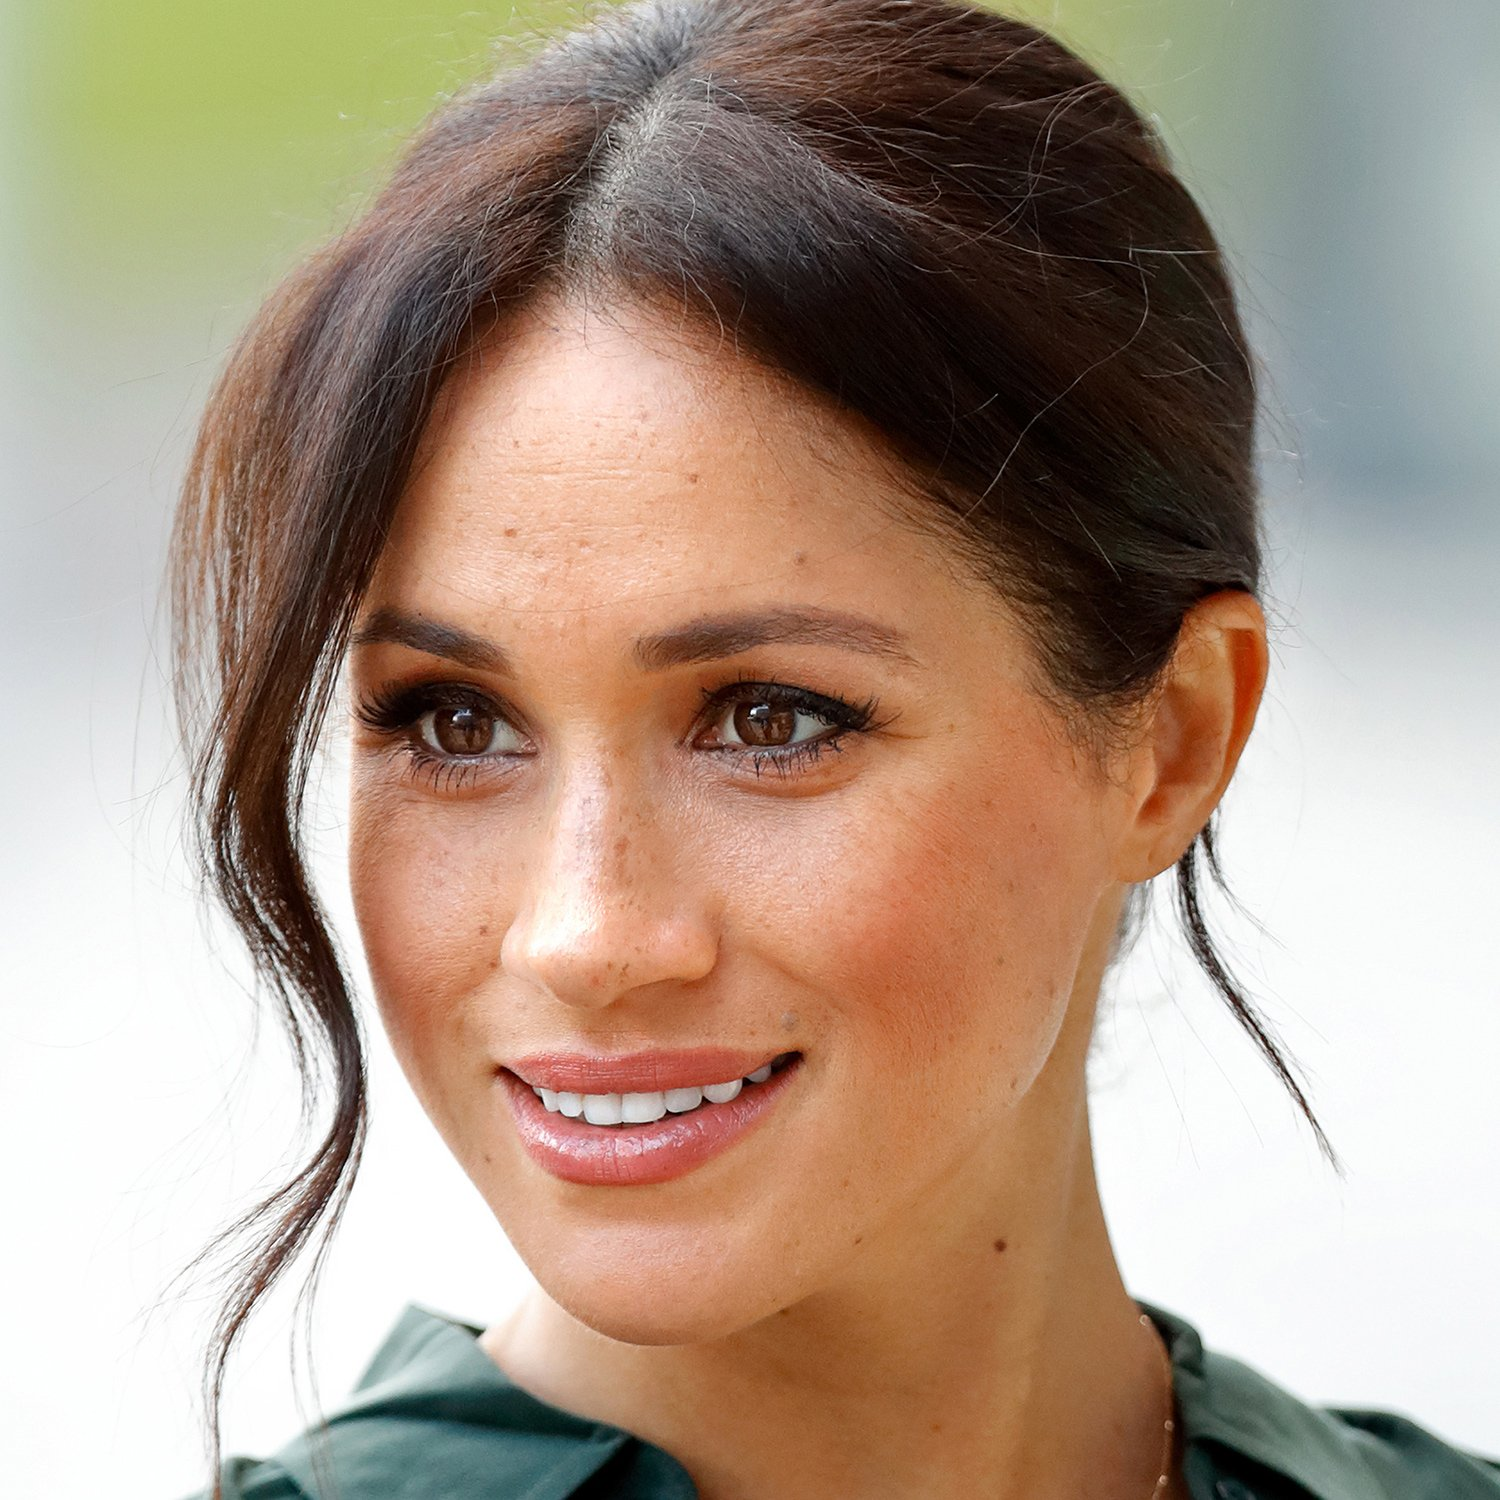 square-meghan-markle-person-of-the-year-2018